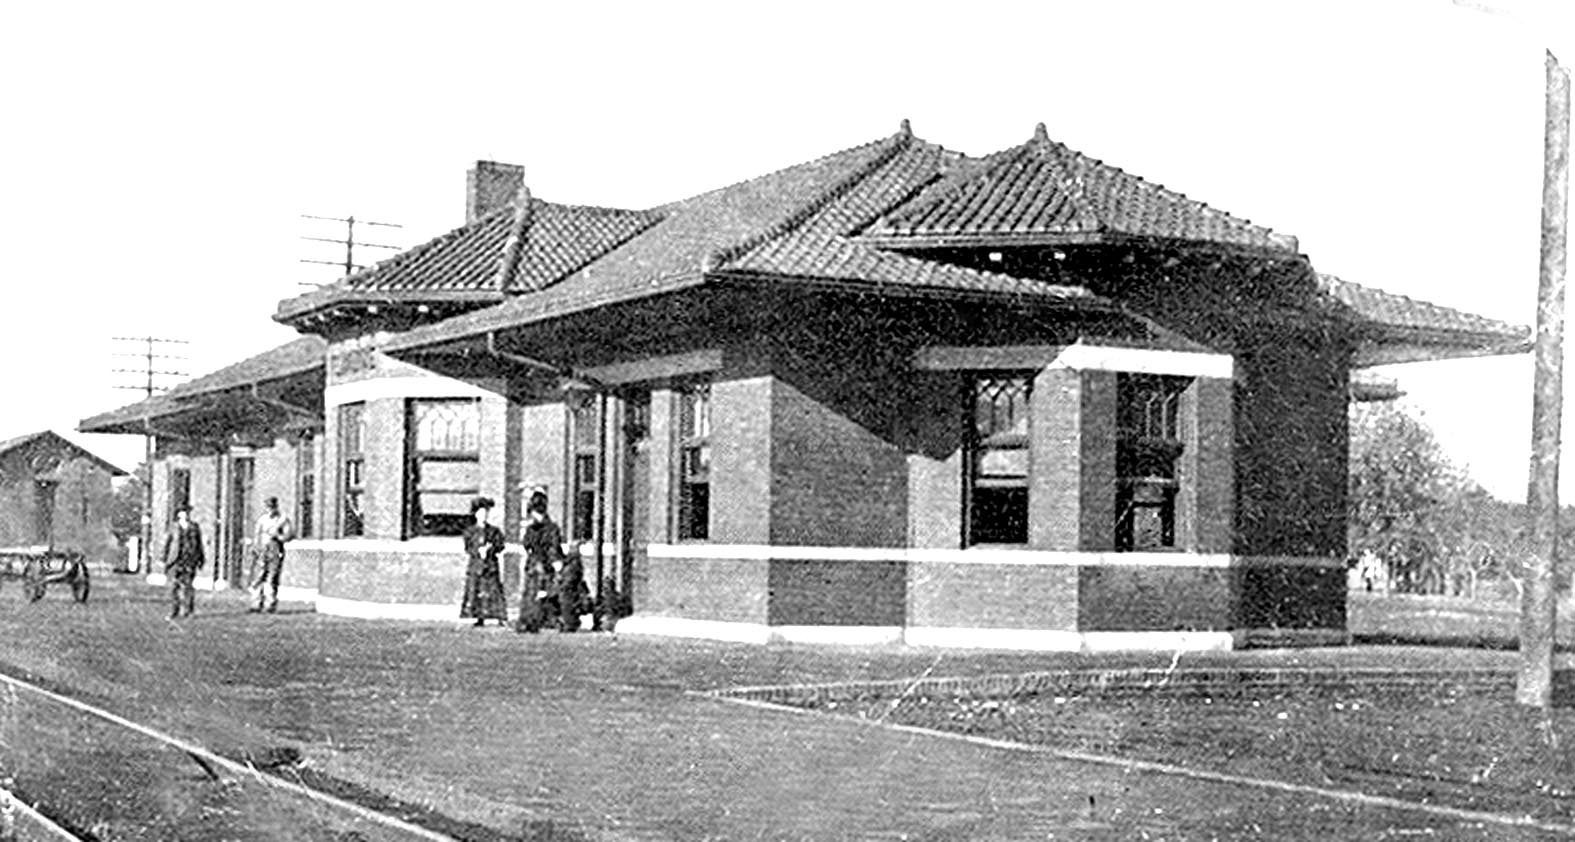 Picture of an Old Santa Fe Depot before 1904